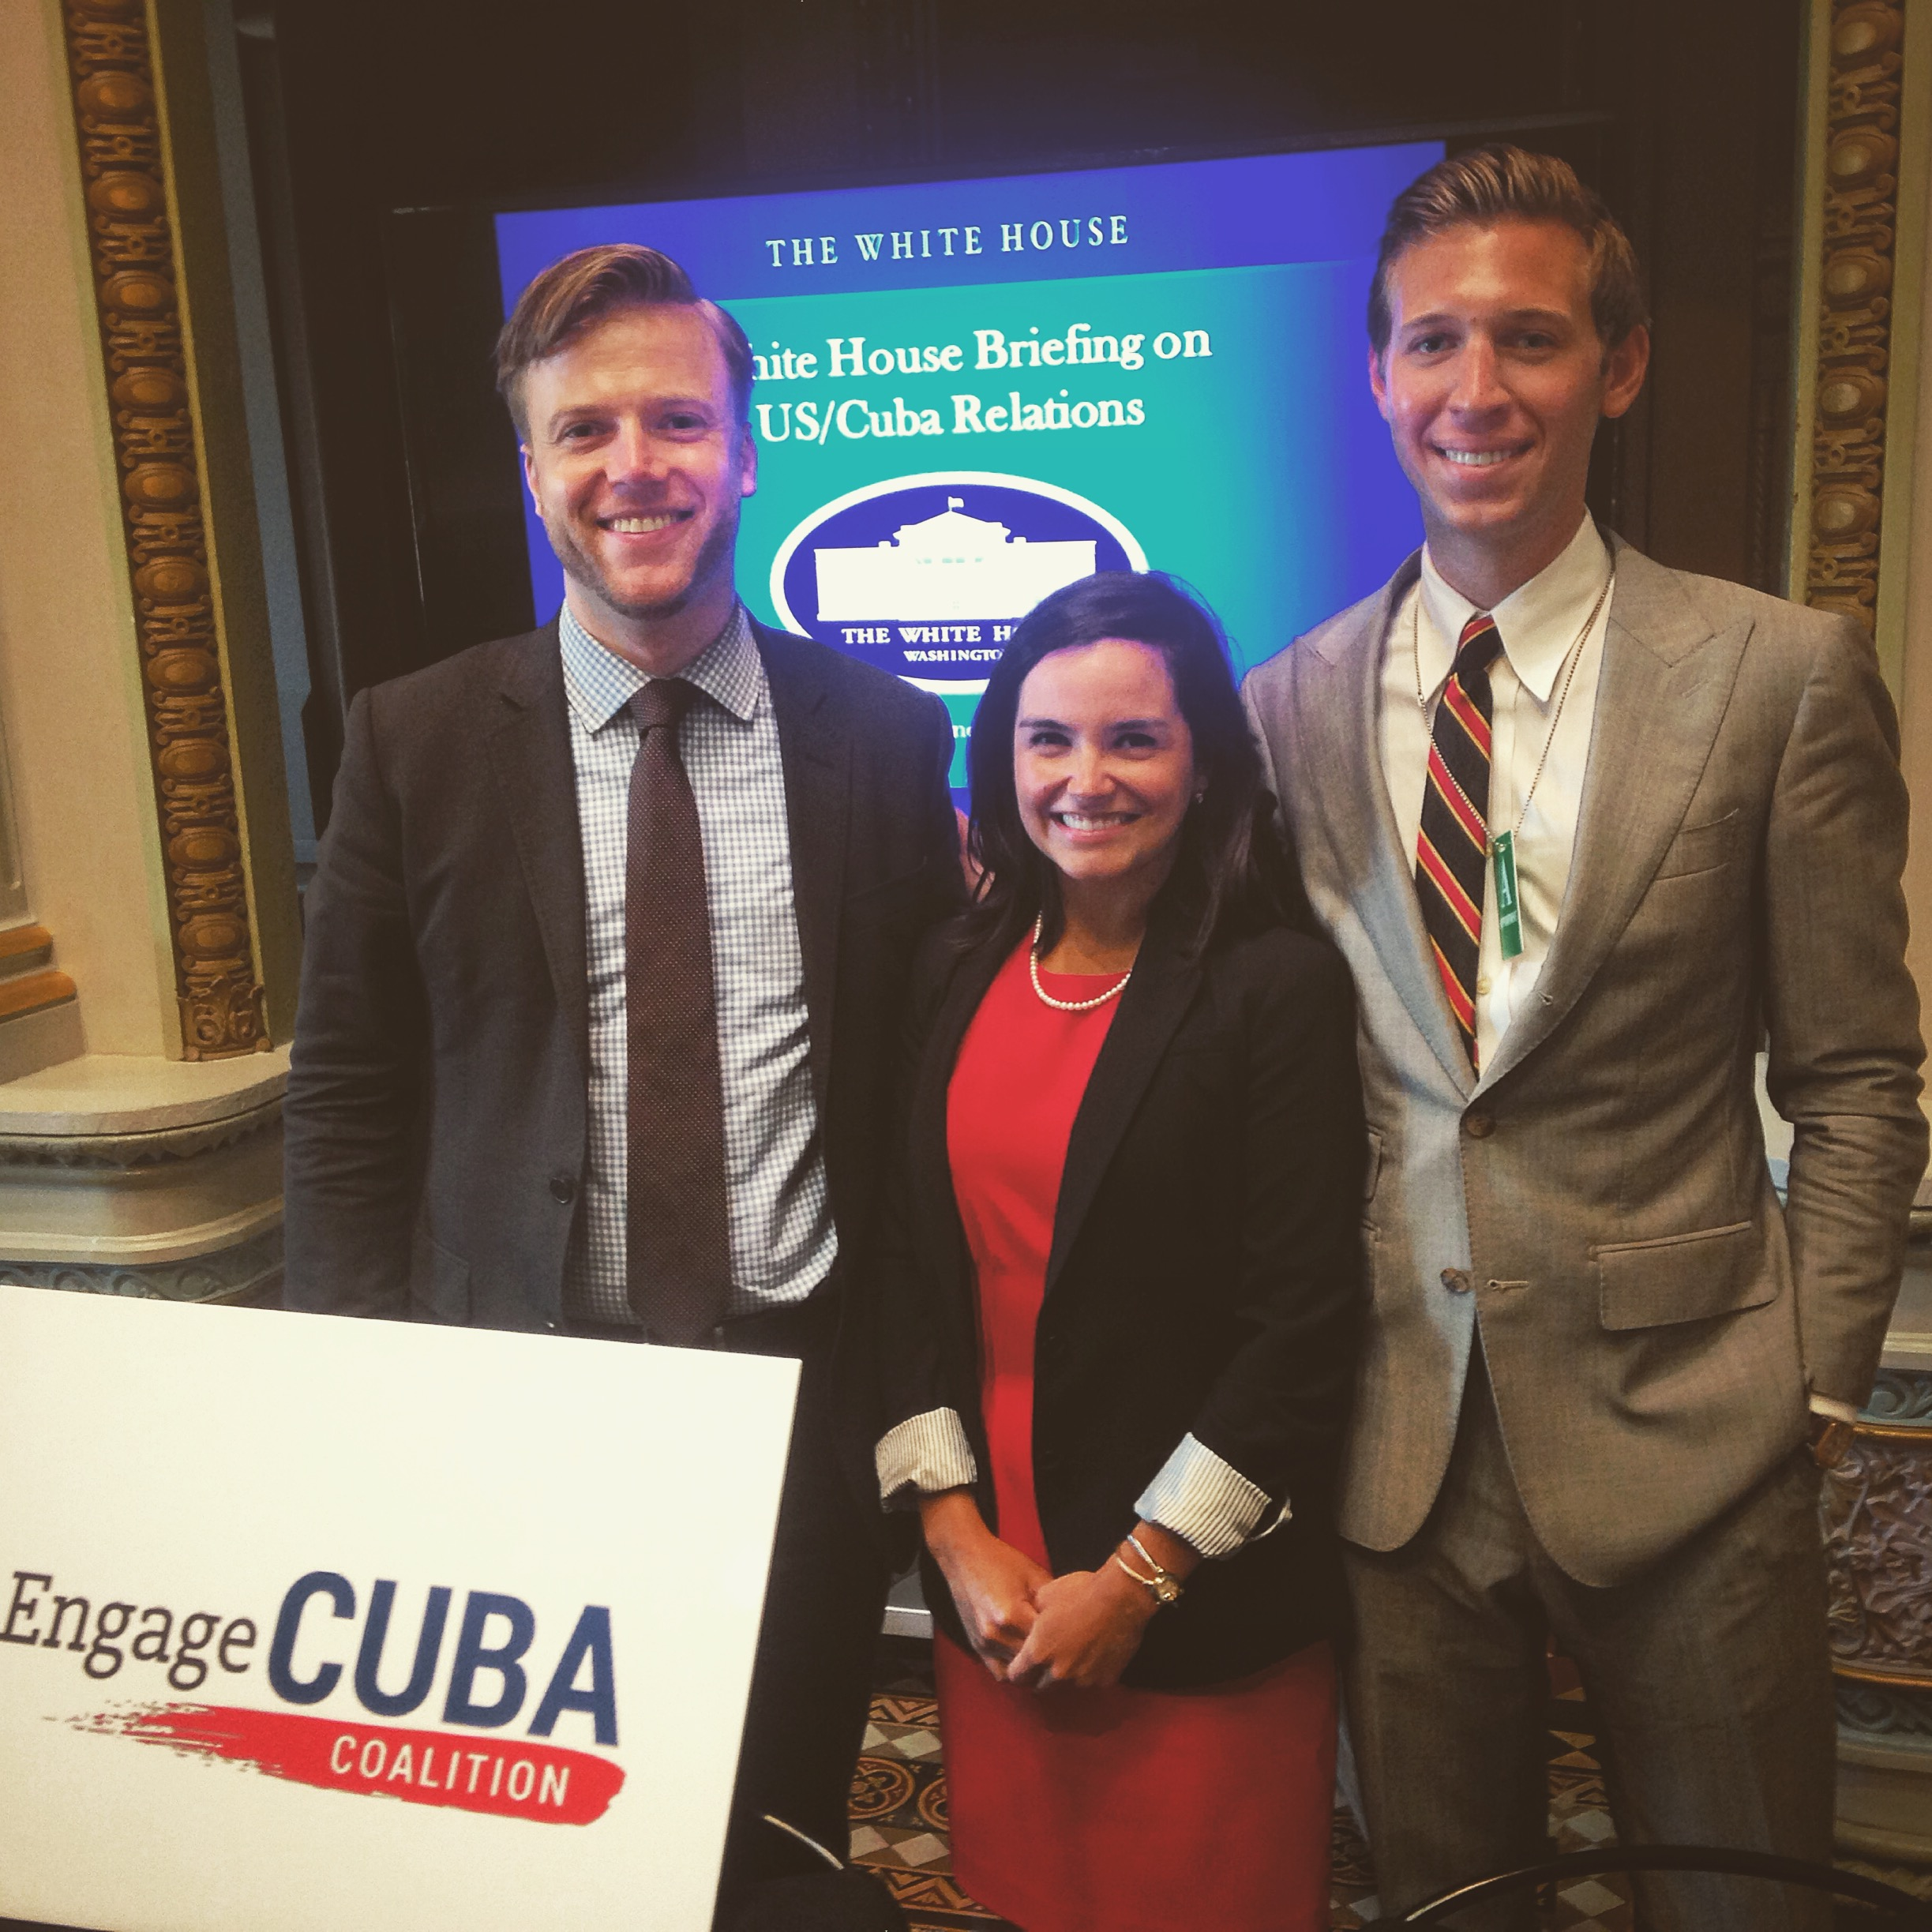 7.22.15 Engage Cuba Luncheon at the White House